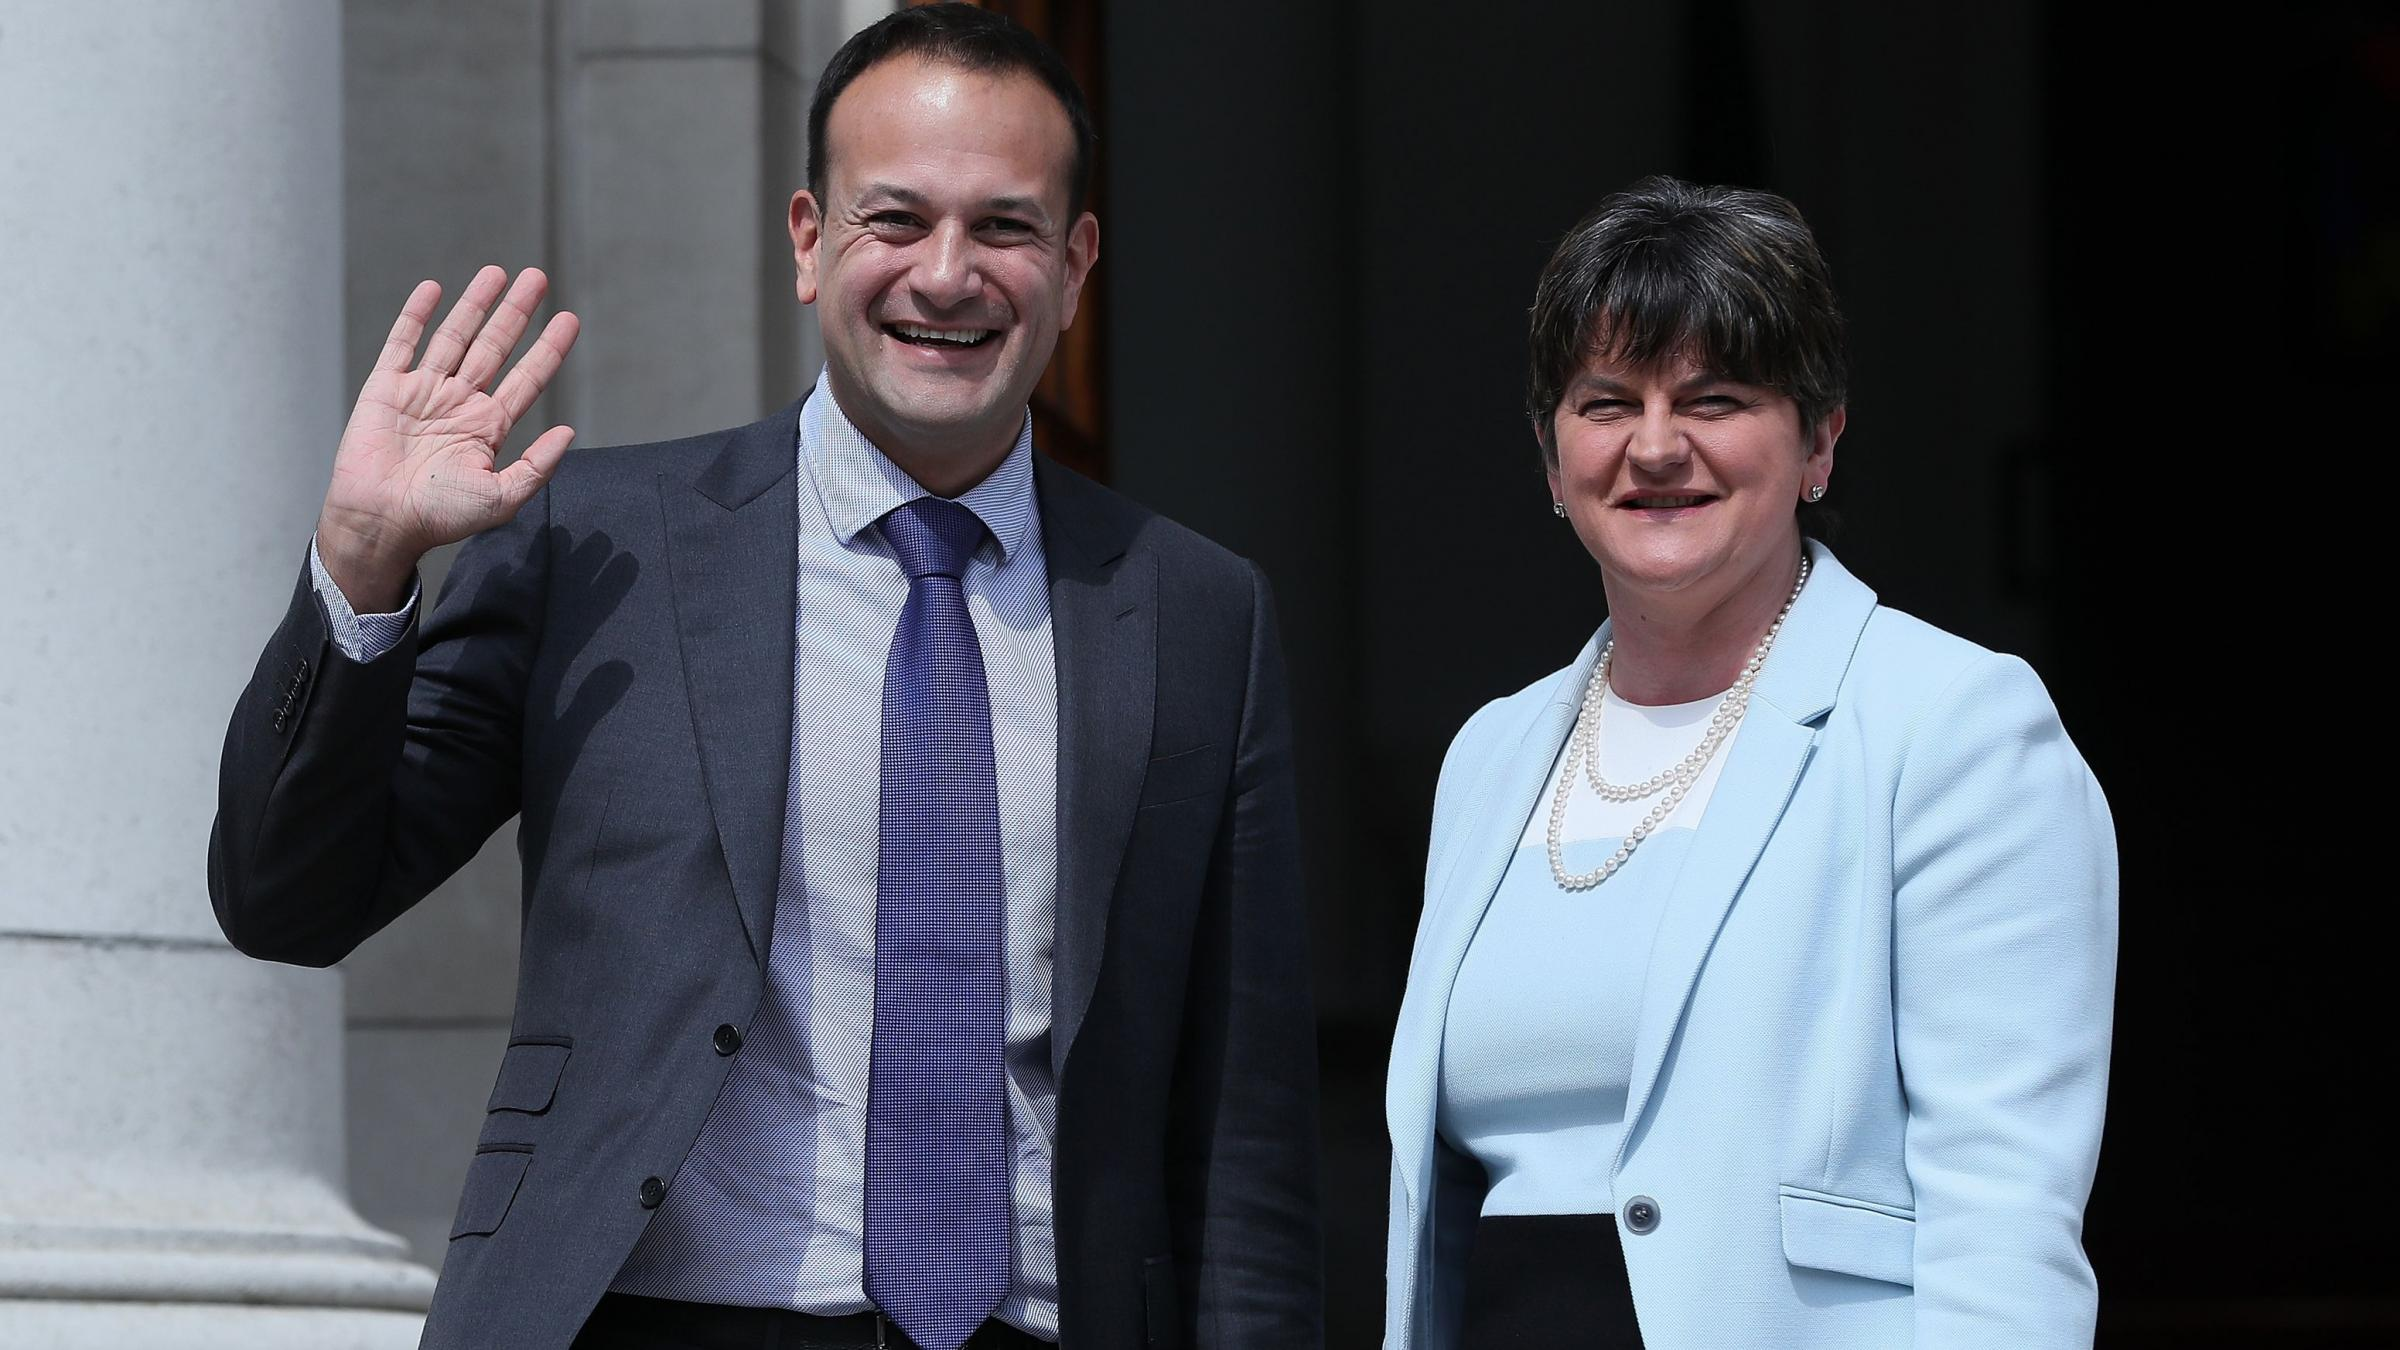 Tories and DUP set to face legal challenge as deal nears